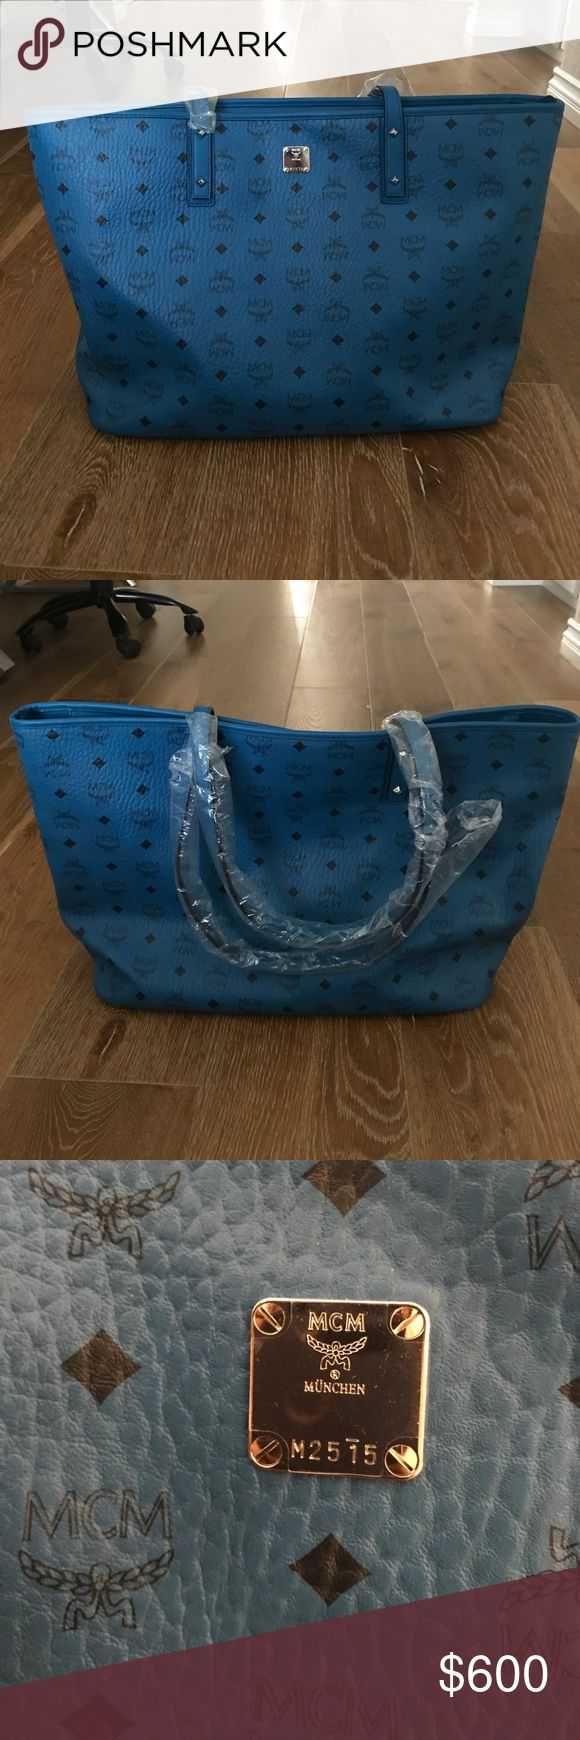 NWOT MCM Bag NWOT Blue monogram MCM bag. Dust bag included. Can be used for every day use or for traveling. Measurements are shown in pictures. MCM Bags Totes